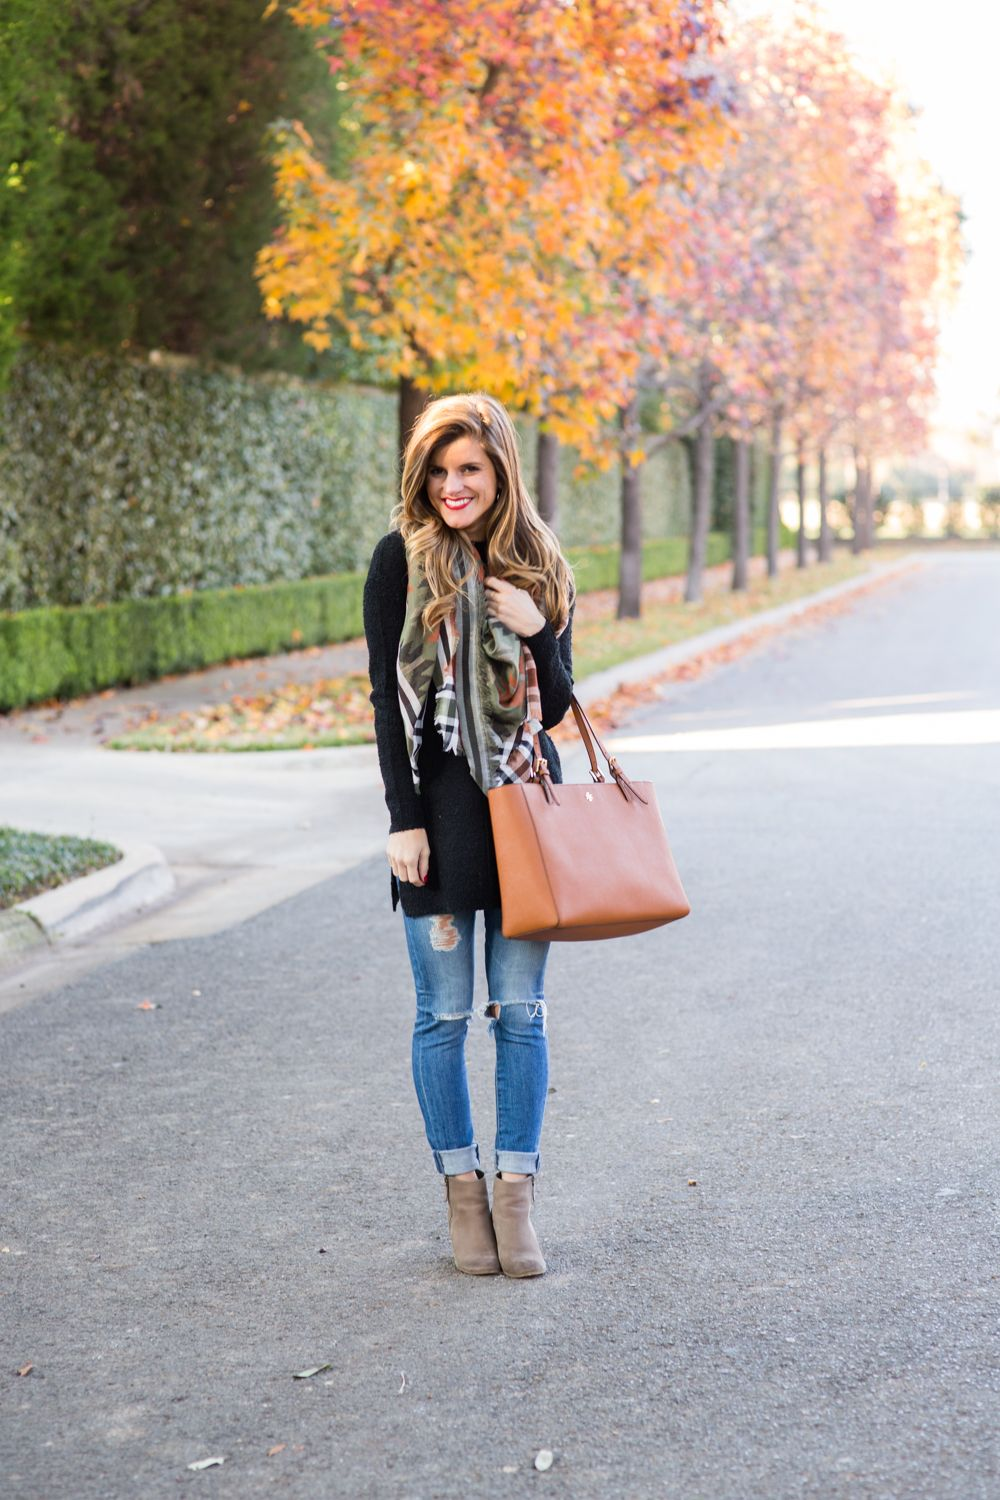 cb77405ffee How to Wear Ankle Boots & Booties - Everything You Need to Know ...